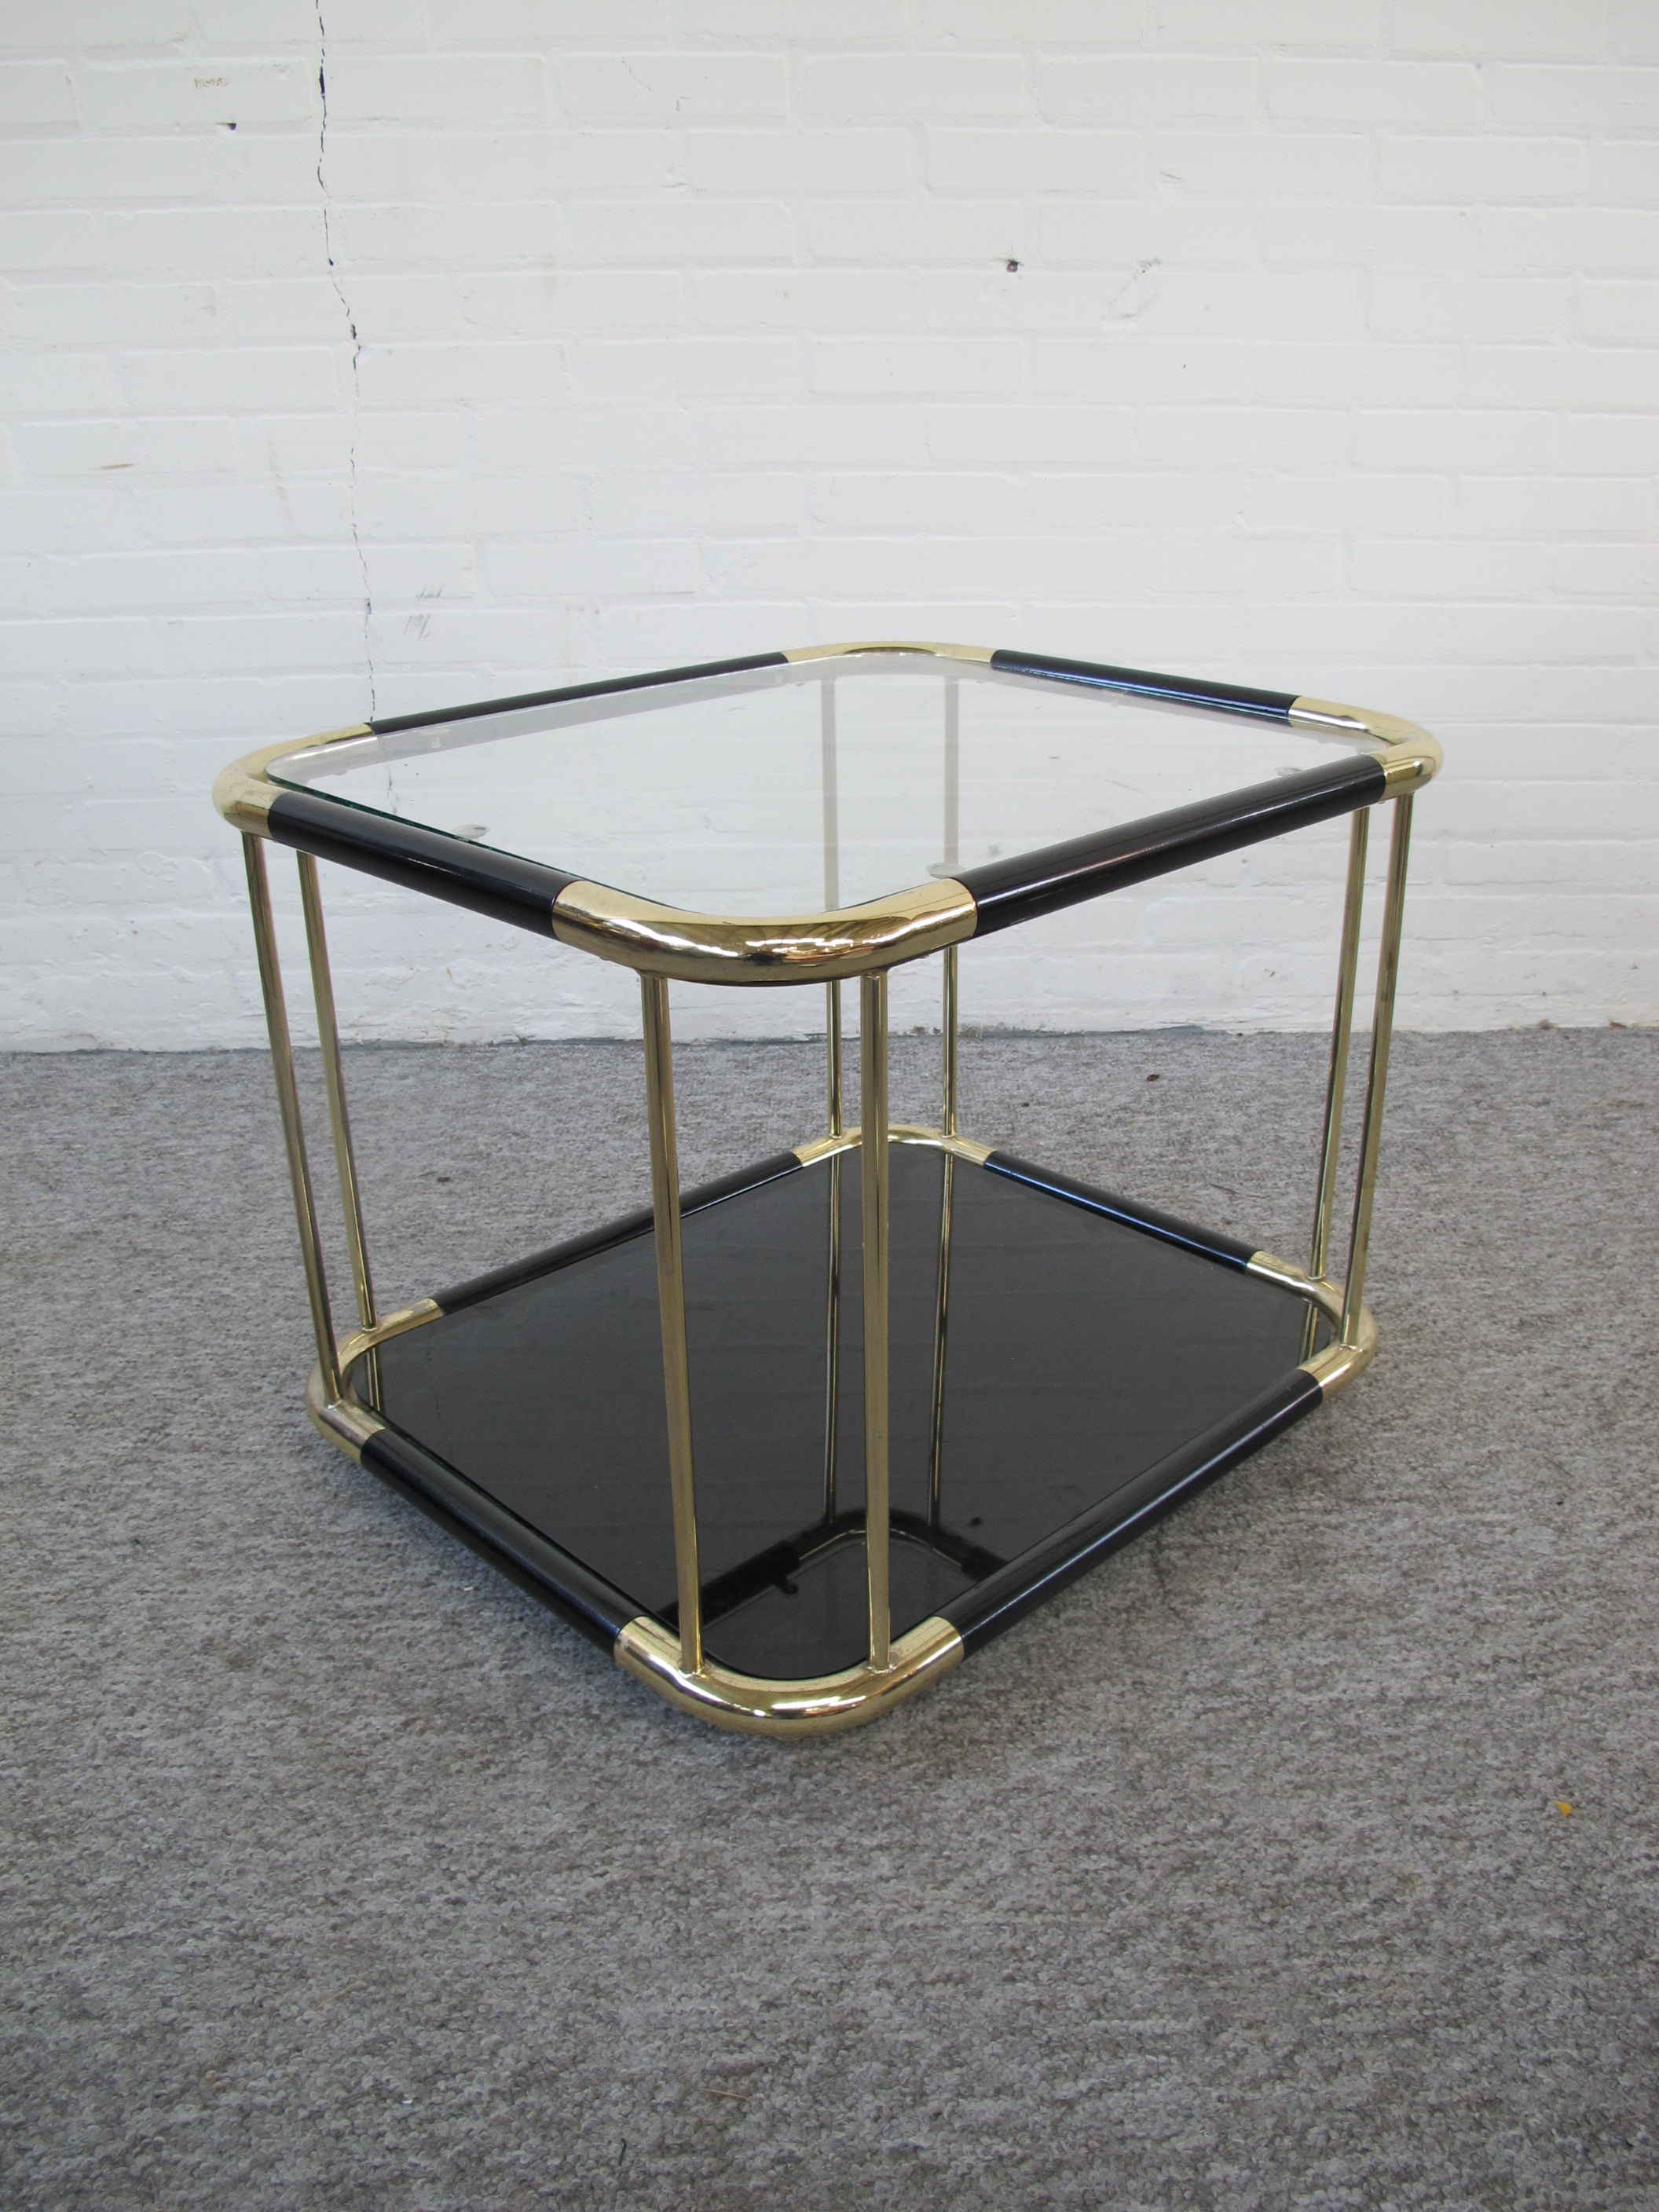 Tafel DeKnudt Willy Rizzo brass messing bijzettafel vintage midcentury